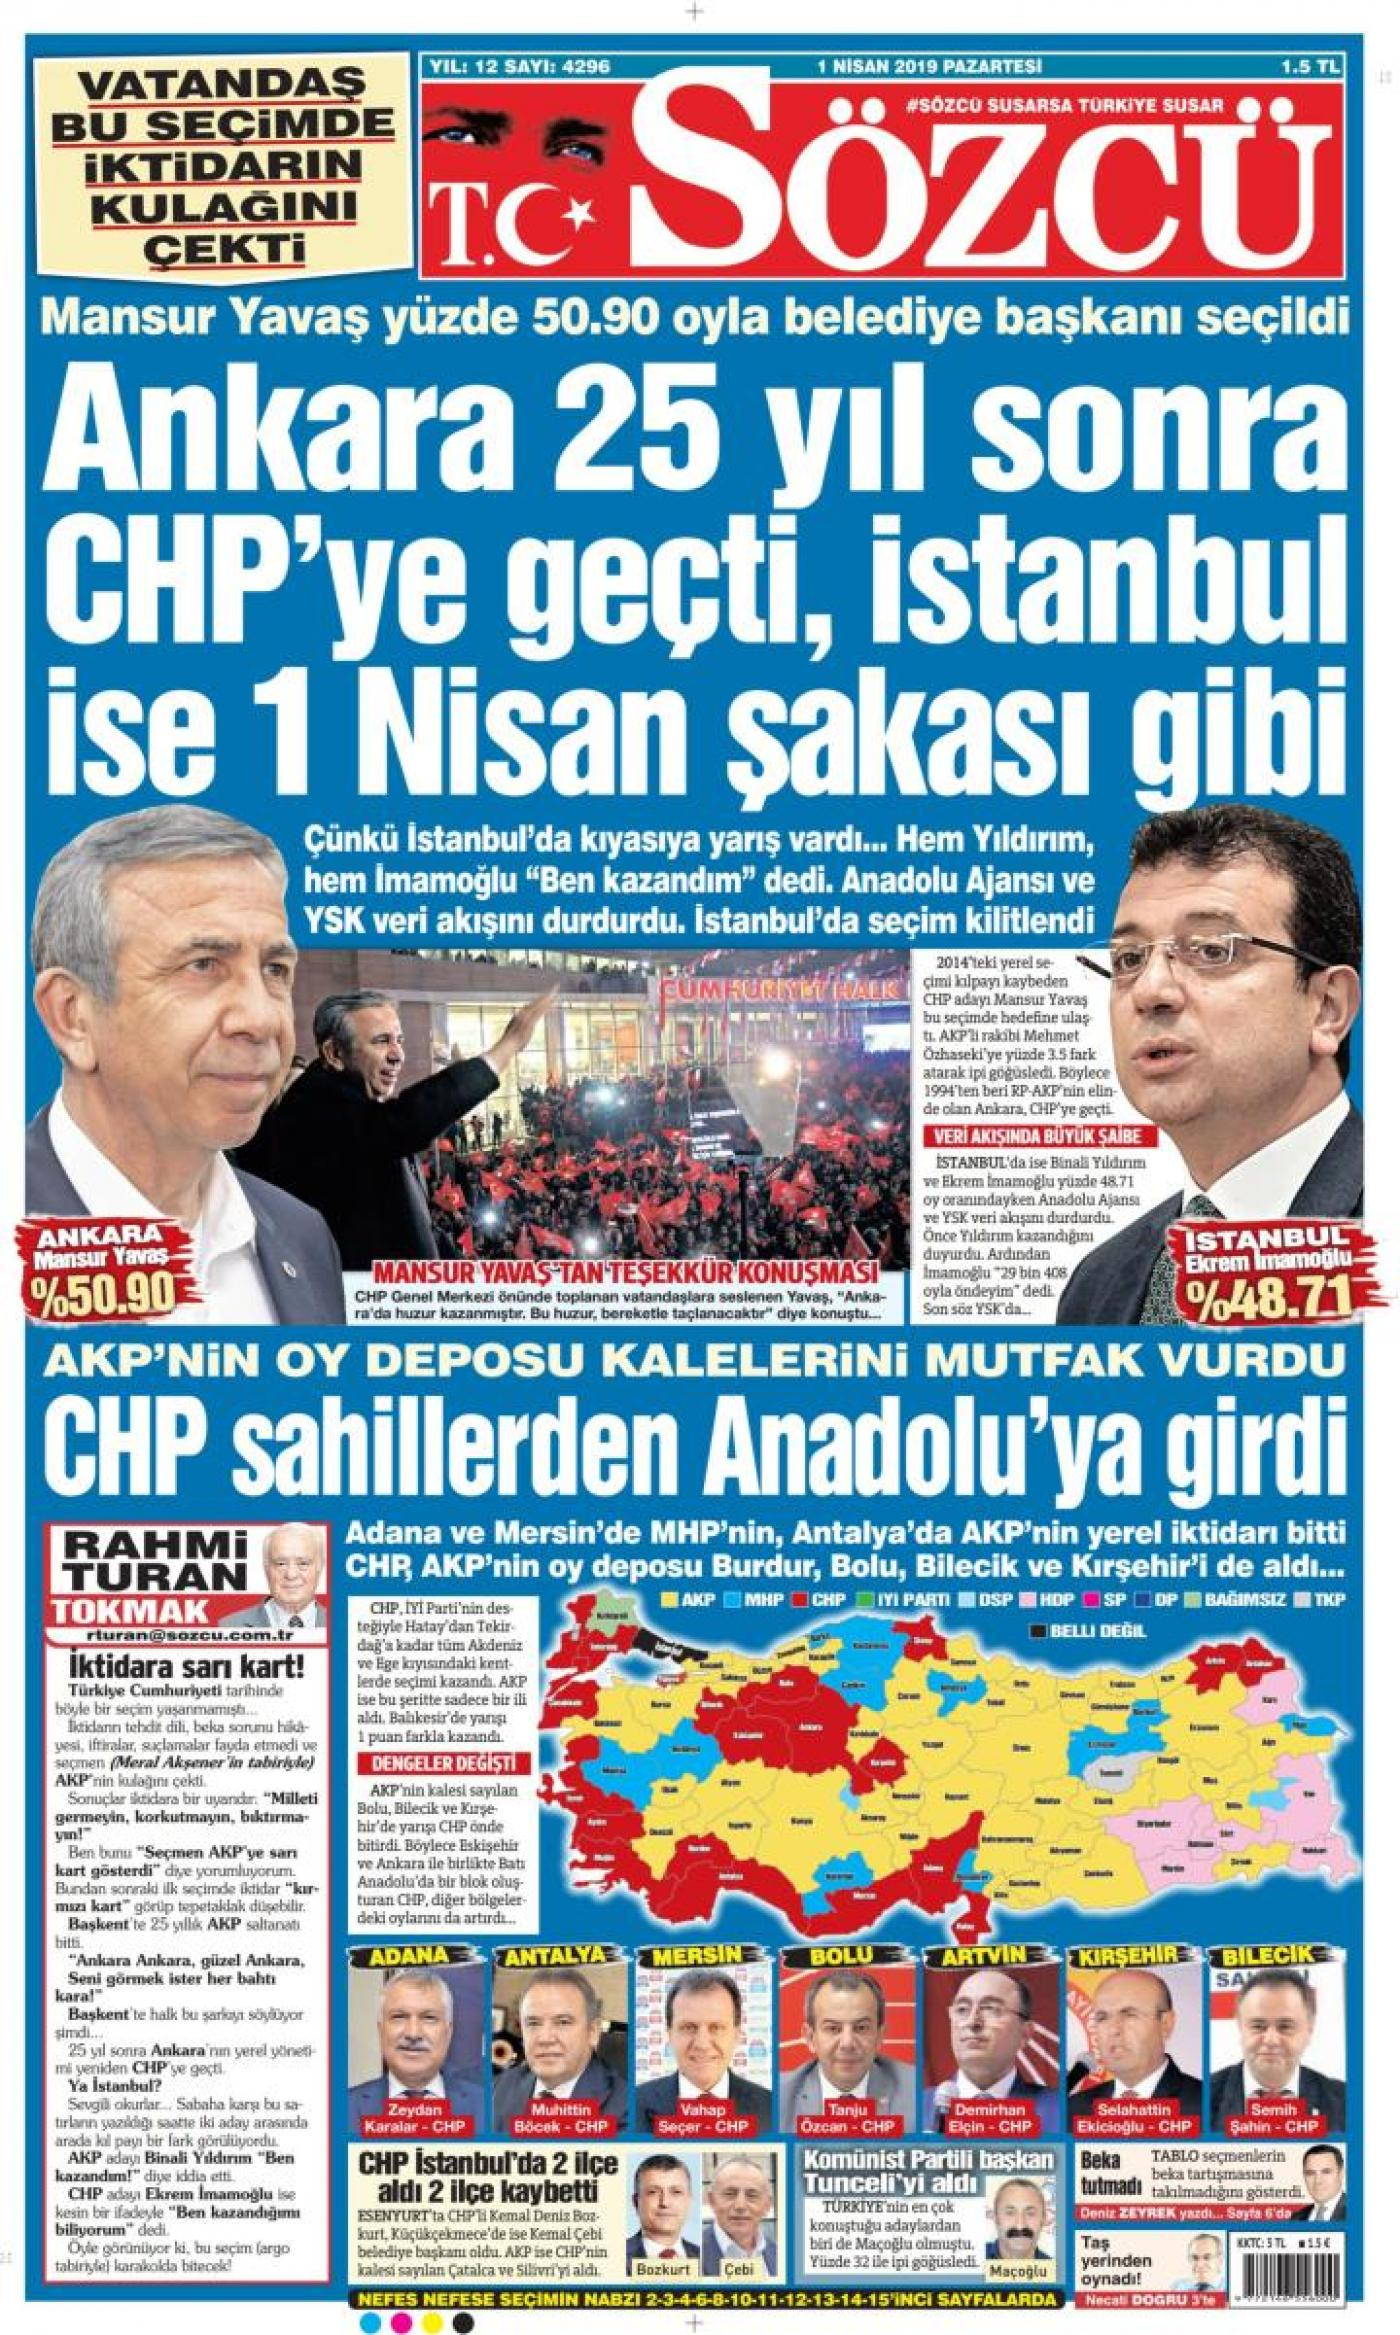 Sozcu daily front page following local elections in Turkey